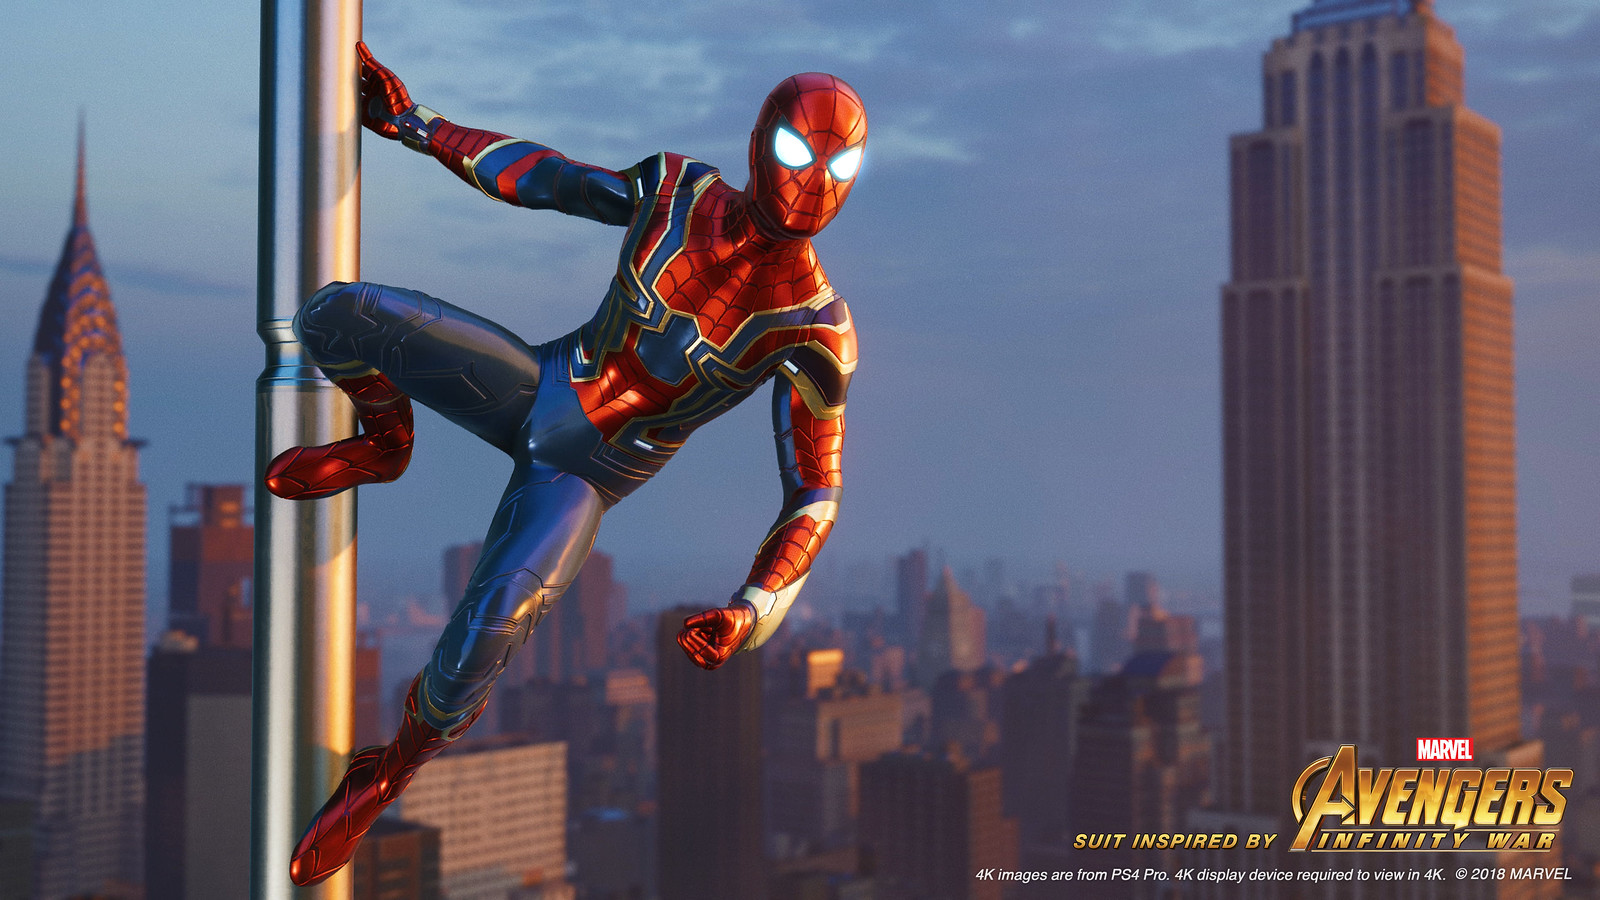 La Tenue Iron Spider Inspiree D Avengers Infinity War